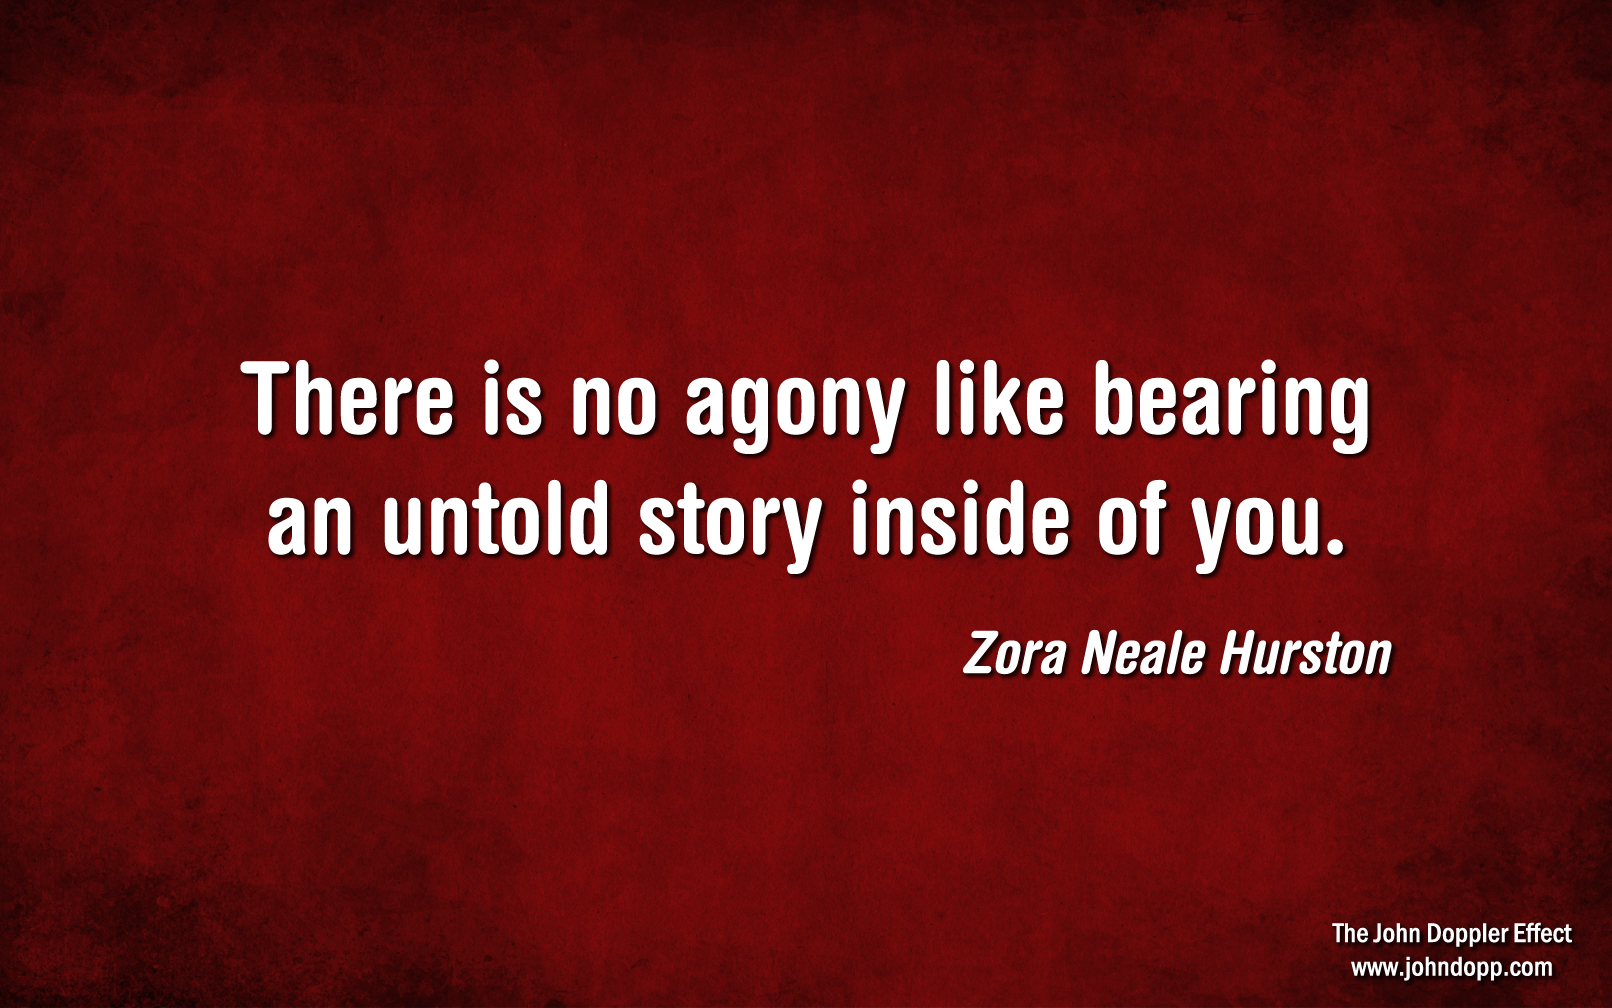 zora neale hurston dust tracks on a road essay Acclaimed novelist and anthropologist zora neale hurston published her autobiography, dust tracks on a road in 1942 when she was fifty and at the height of her literary fame hurston was a major part of the harlem renaissance.